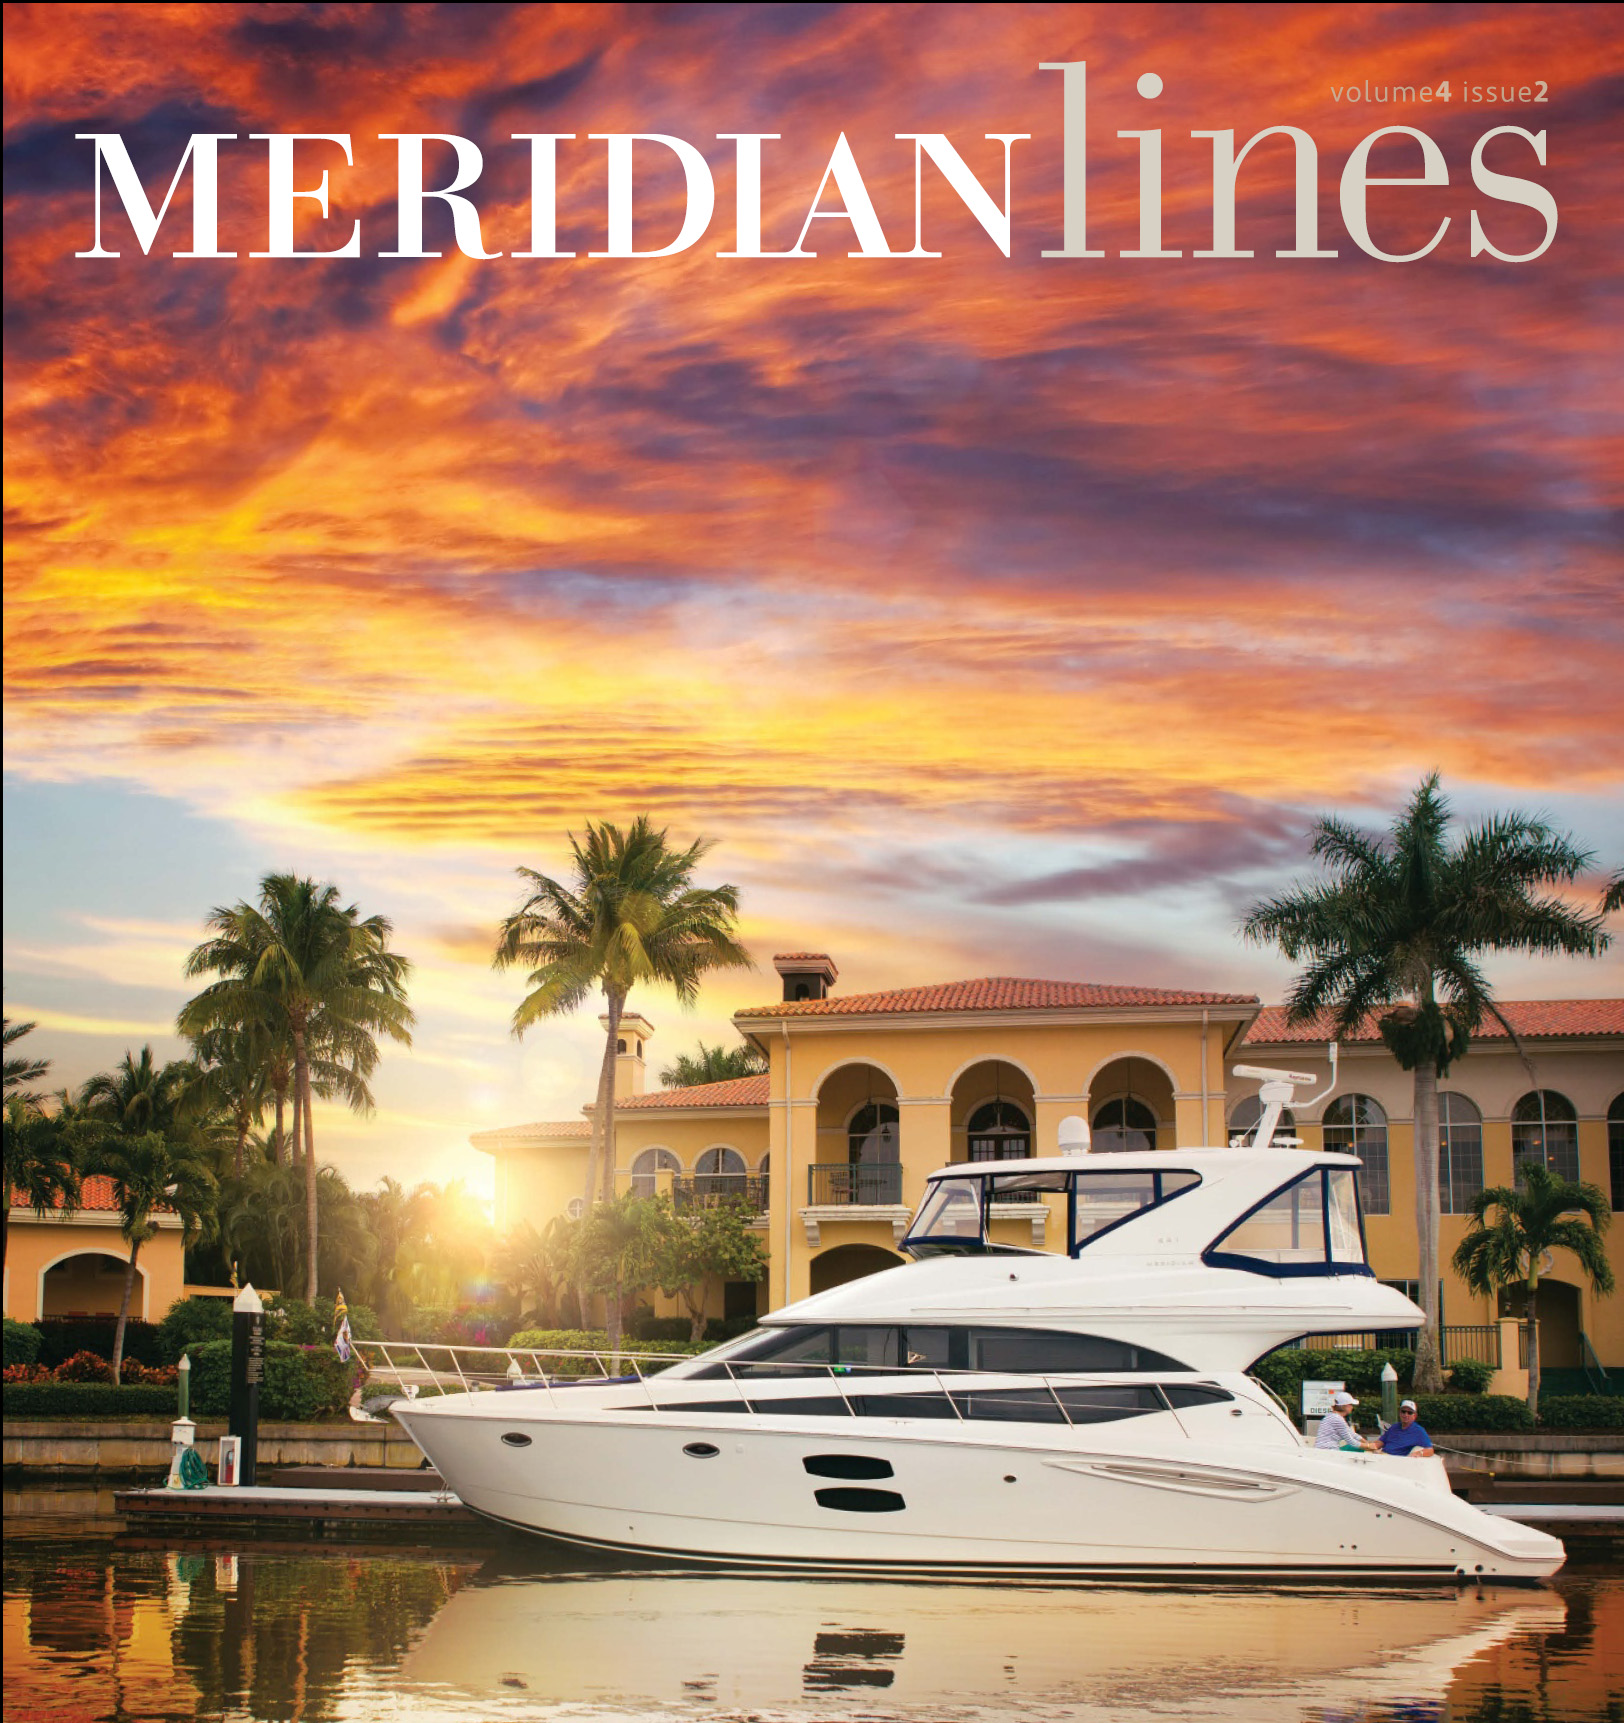 Meridian Lines Vol 4 Issue 2